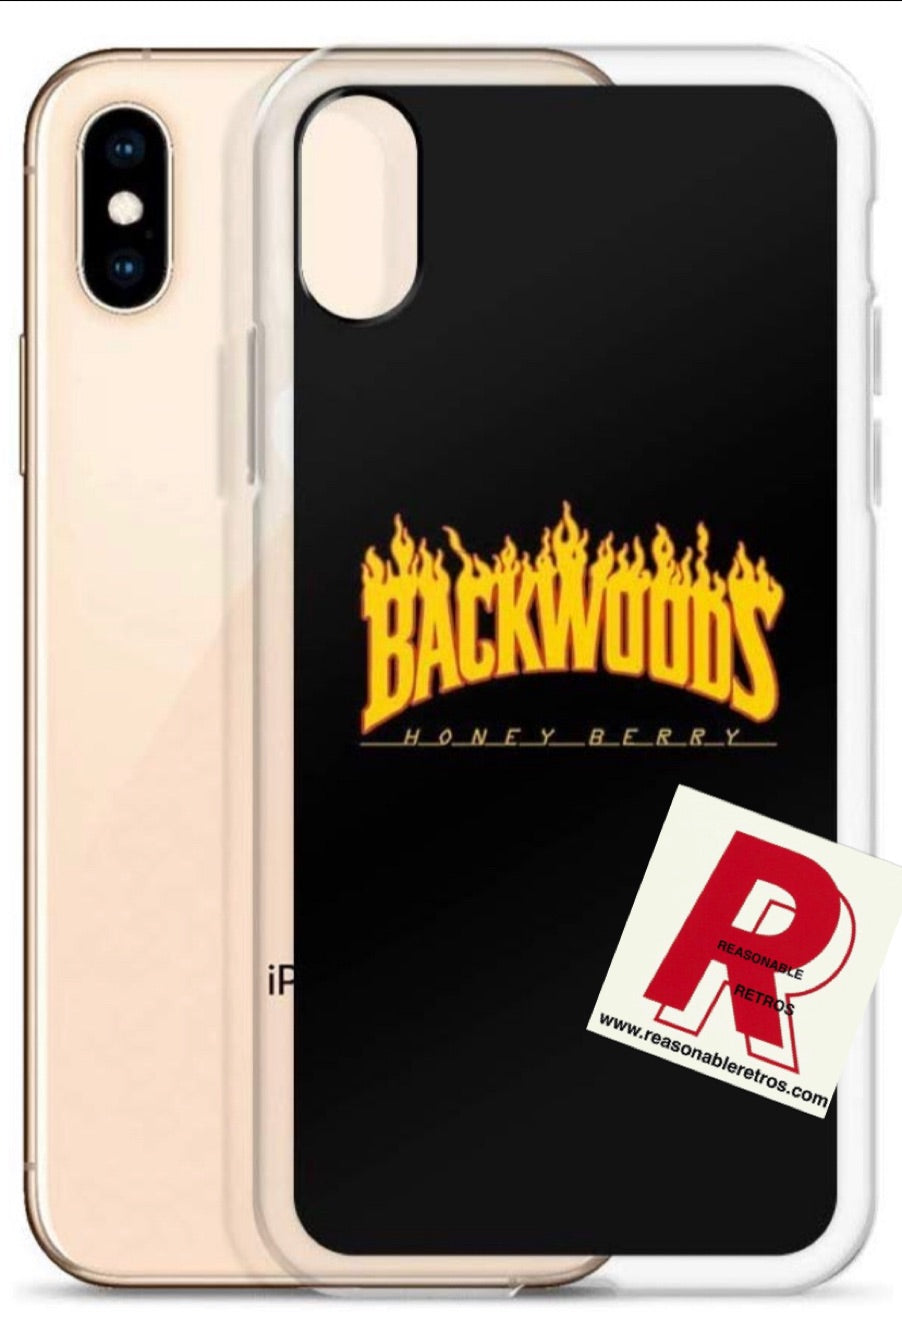 Backwoods IPhone XR case